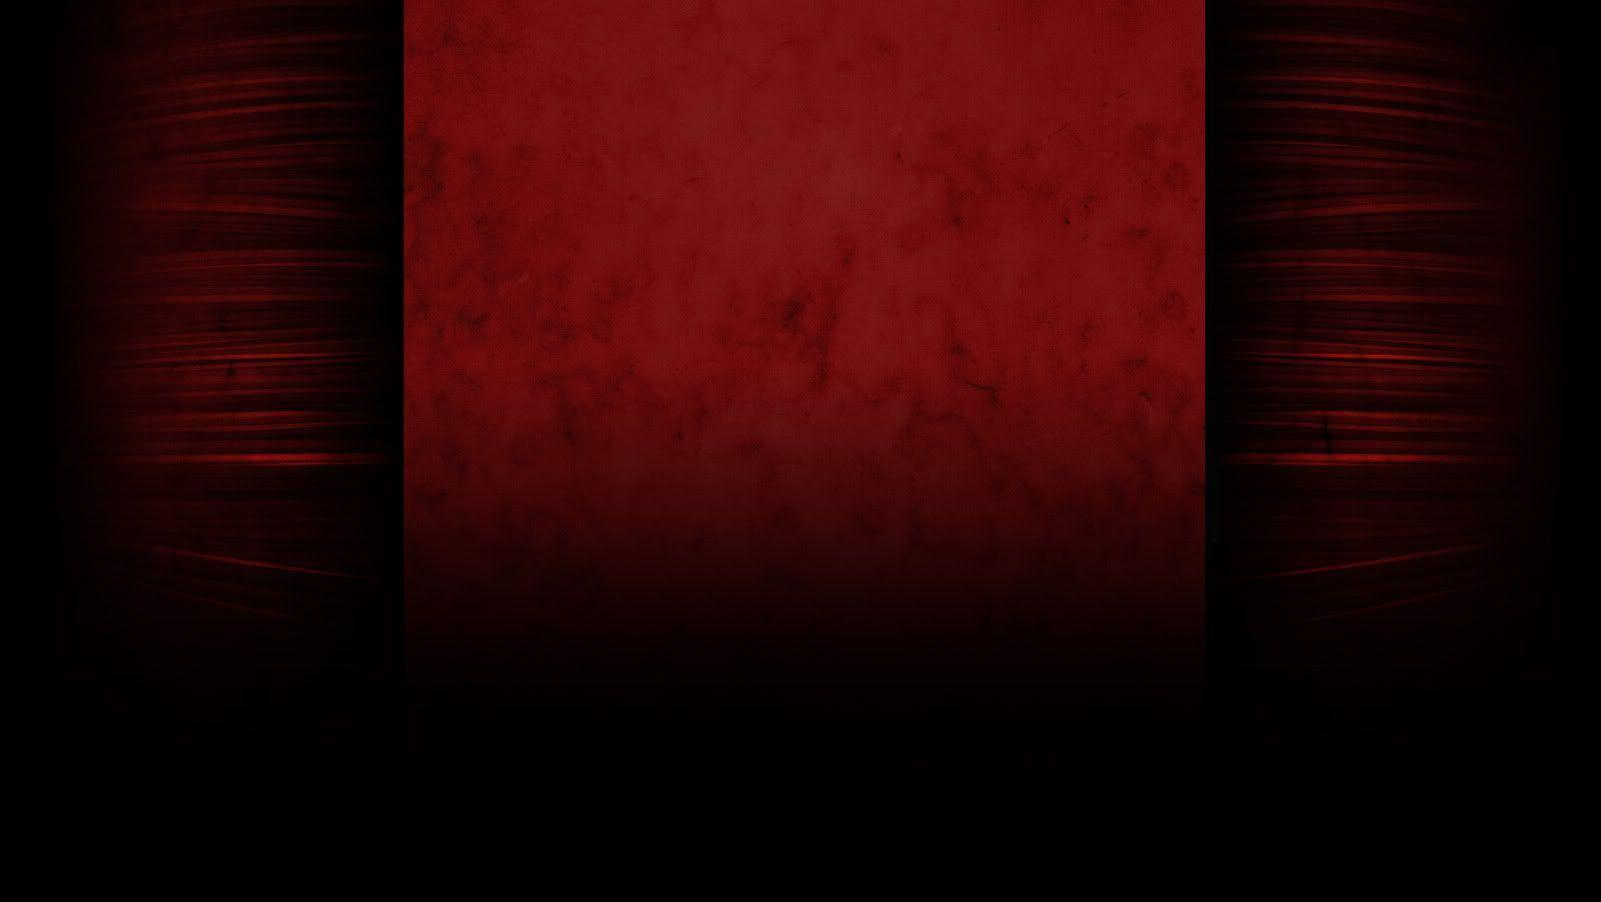 Red Backgrounds Wallpapers - Wallpaper Cave